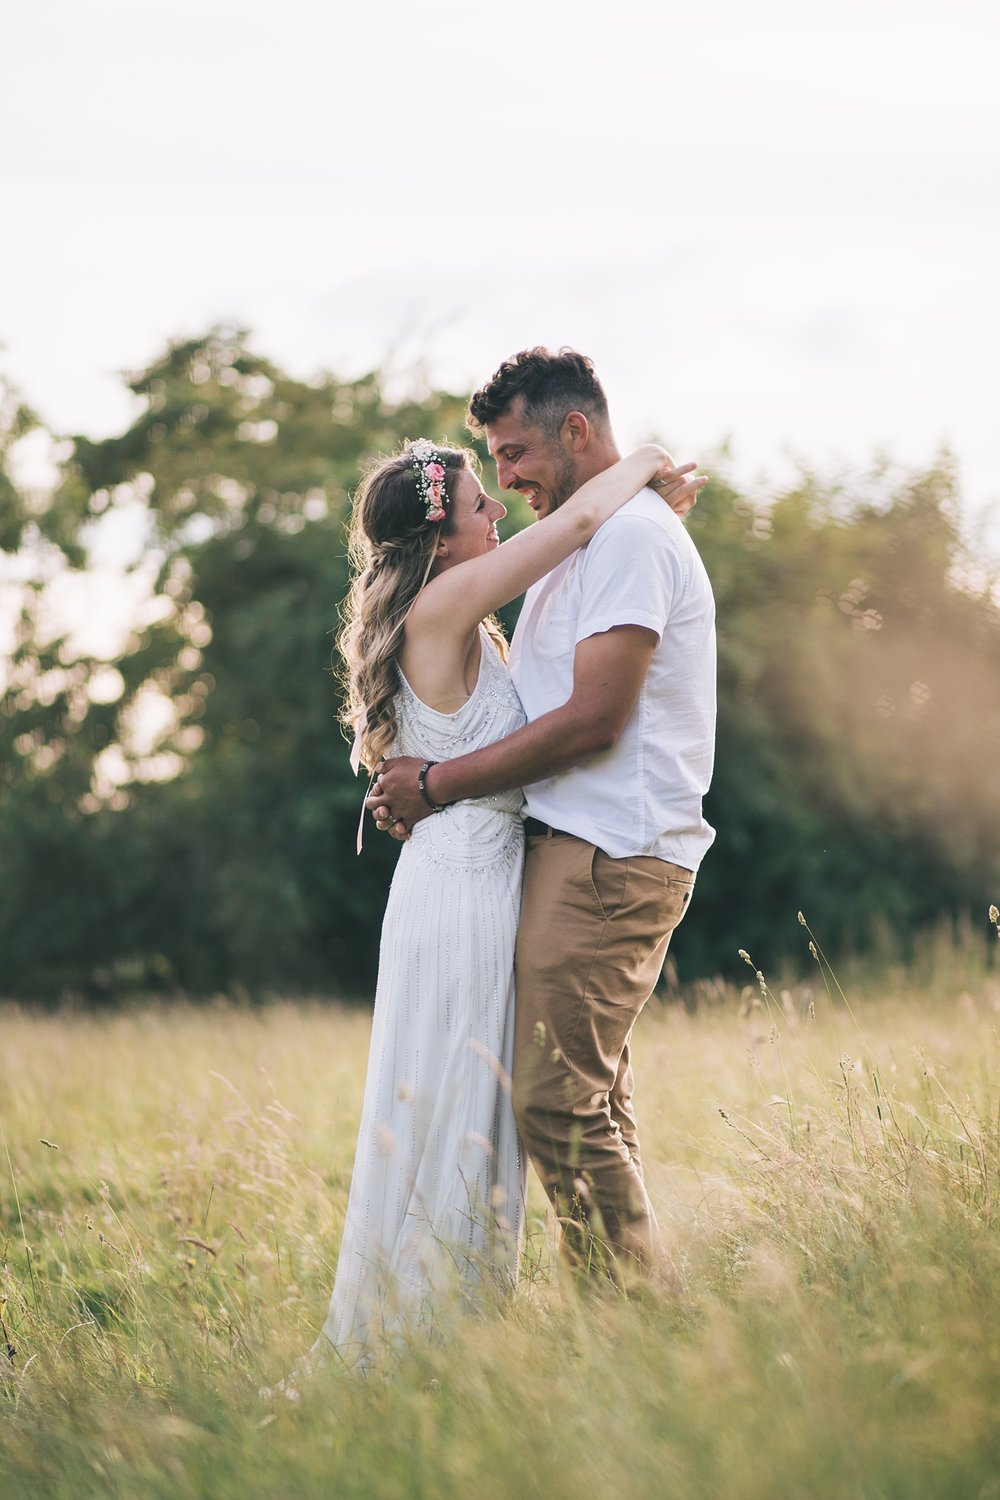 Copy of Cornwall wedding photographer Devon Shropshire